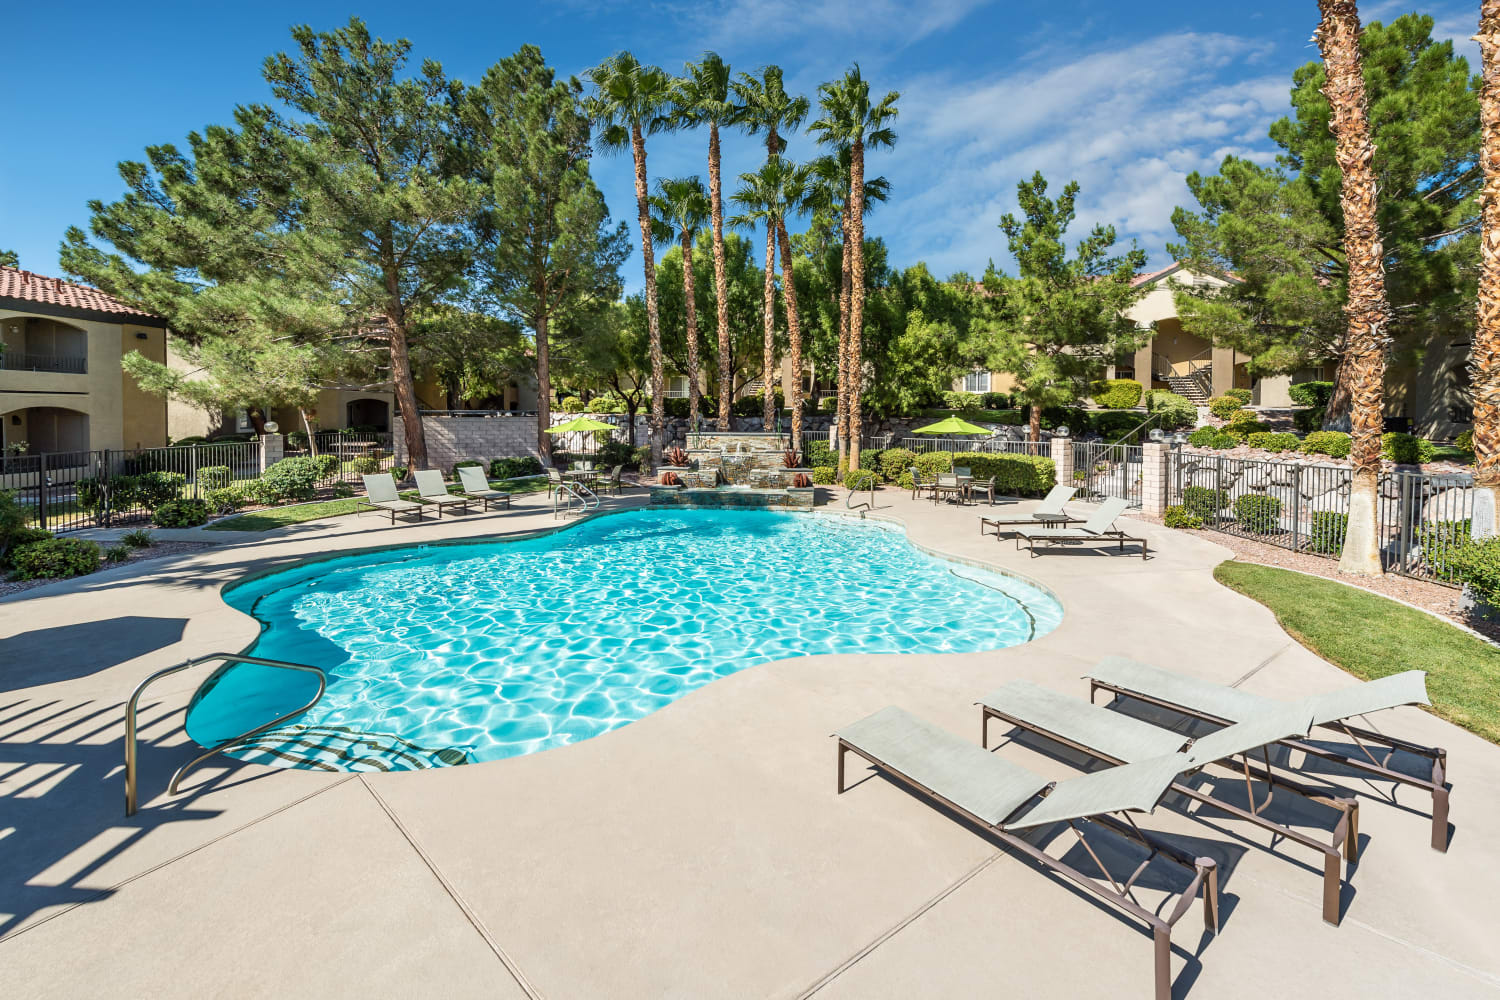 Enjoy warm sunshine and a sparkling swimming pool at Rancho Destino Apartments in Las Vegas, Nevada